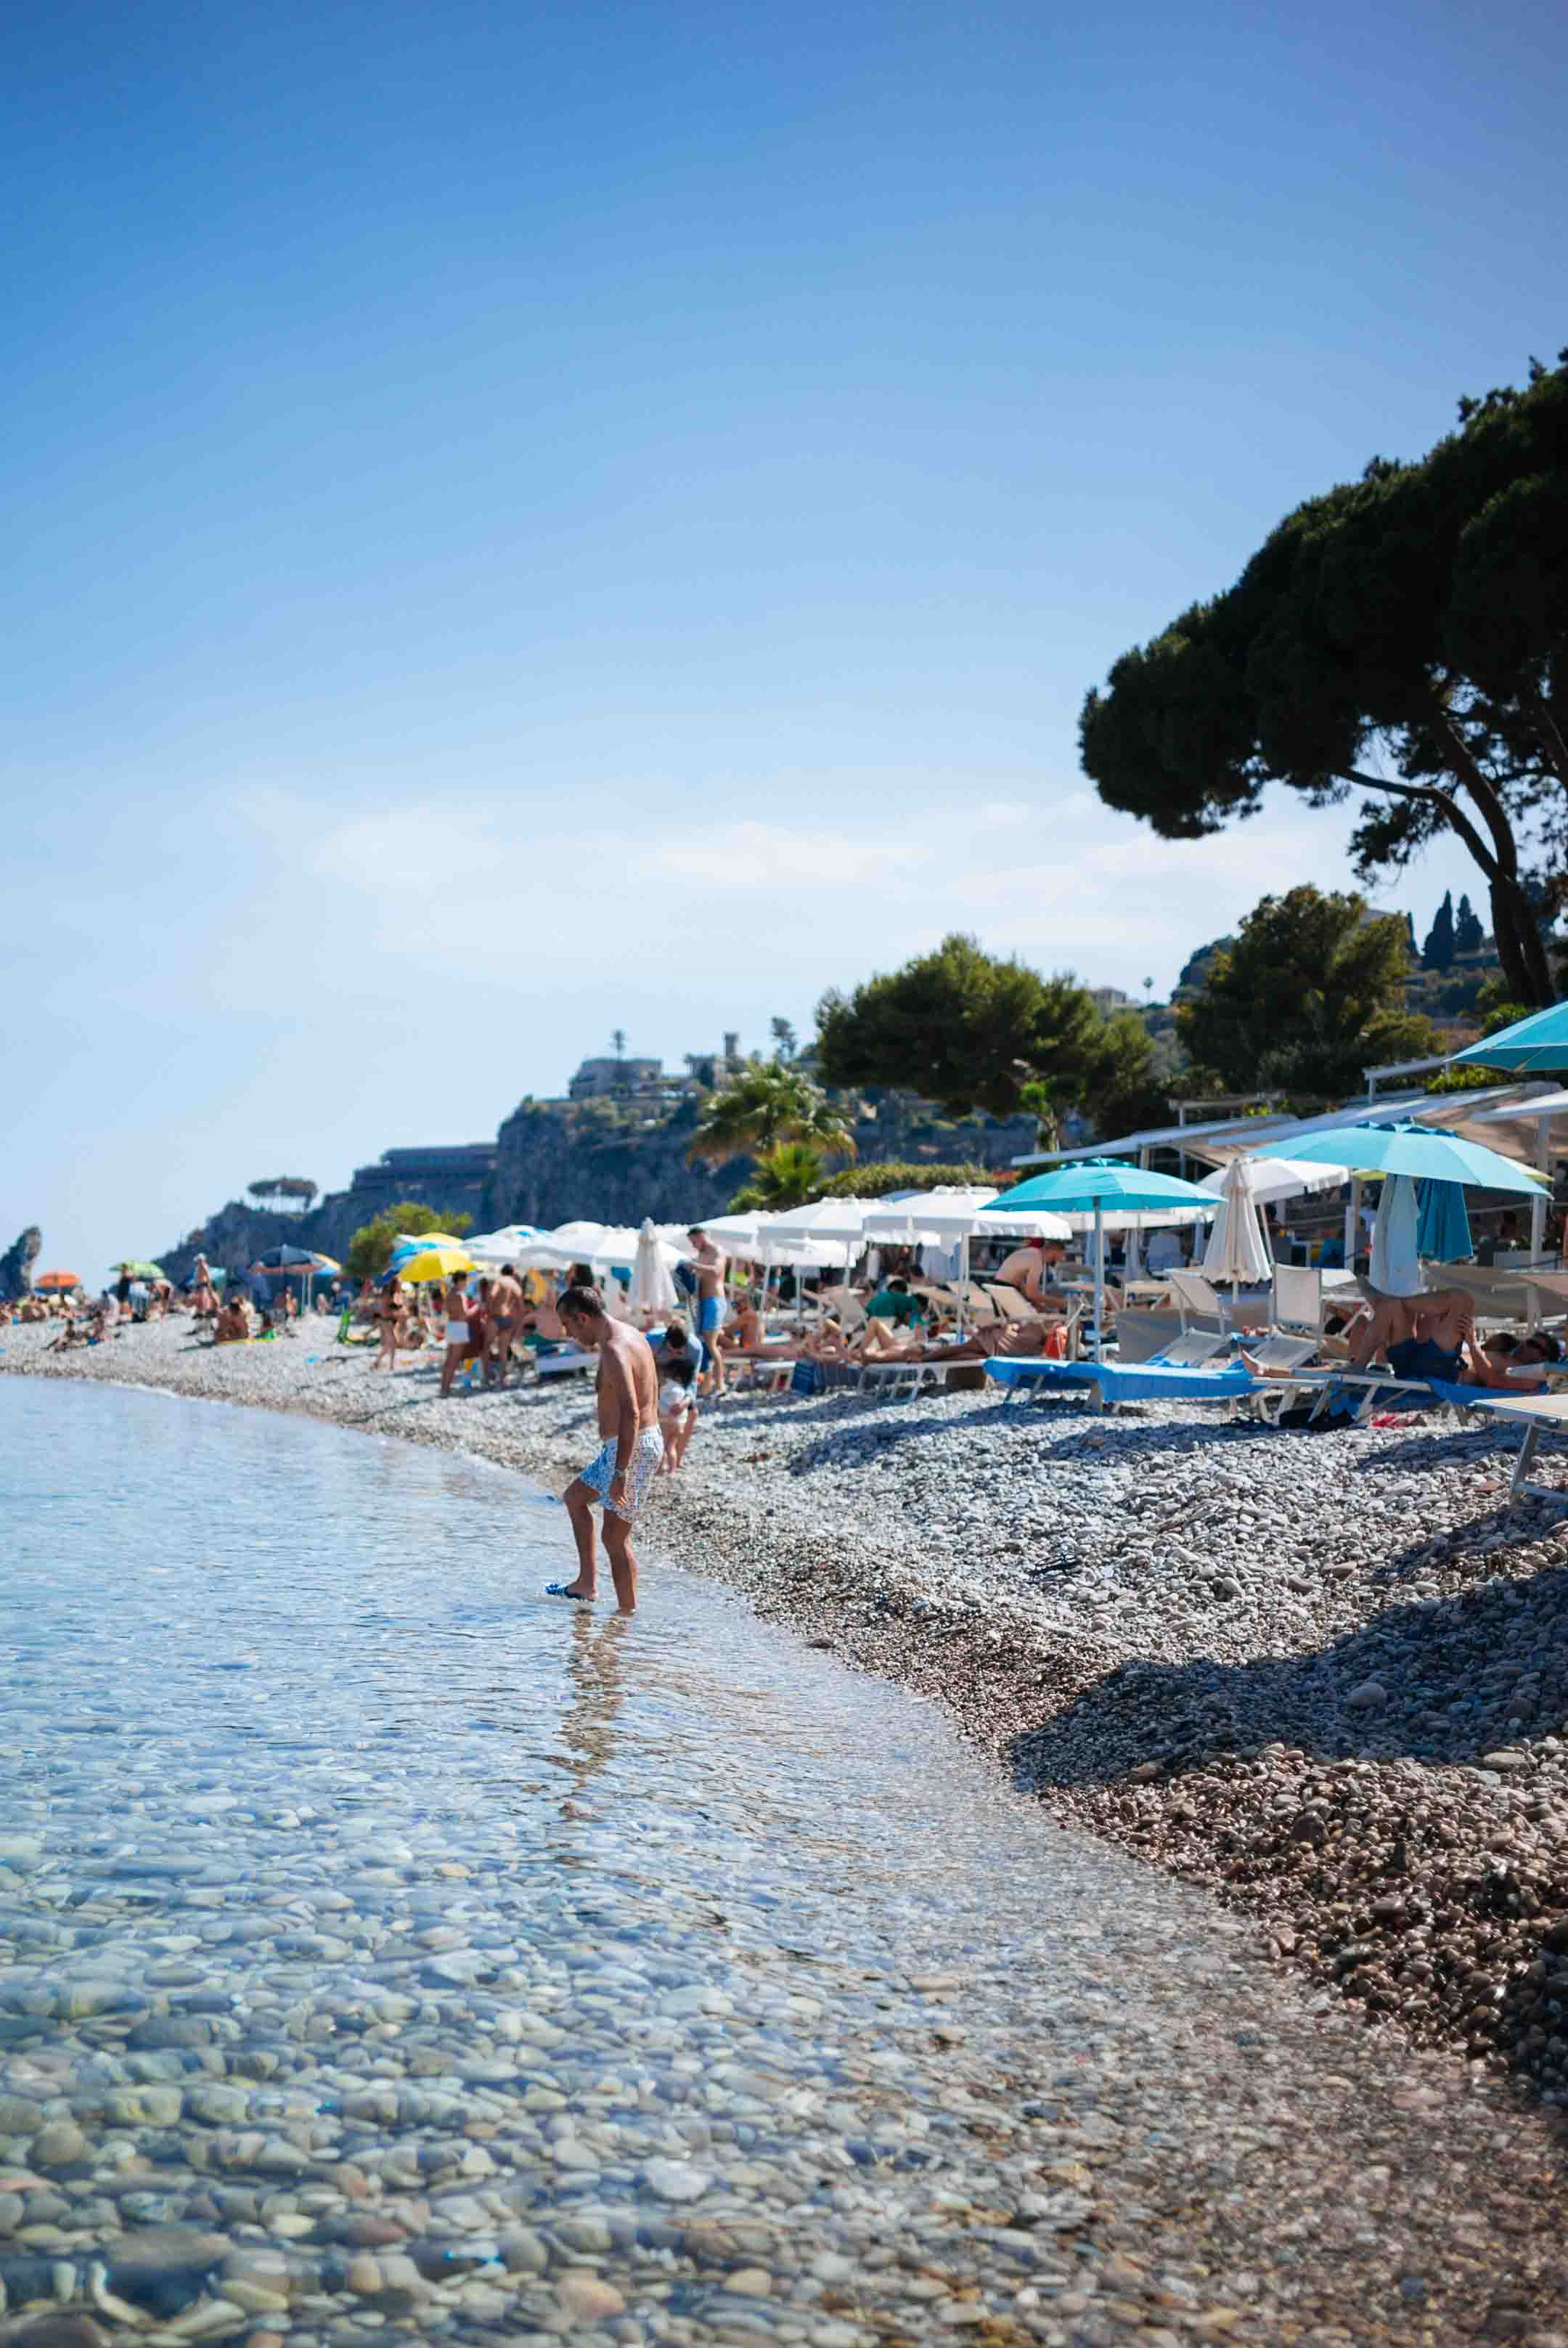 Spend the day at the beach in Sicily at Isola Bella like The Taste Edit